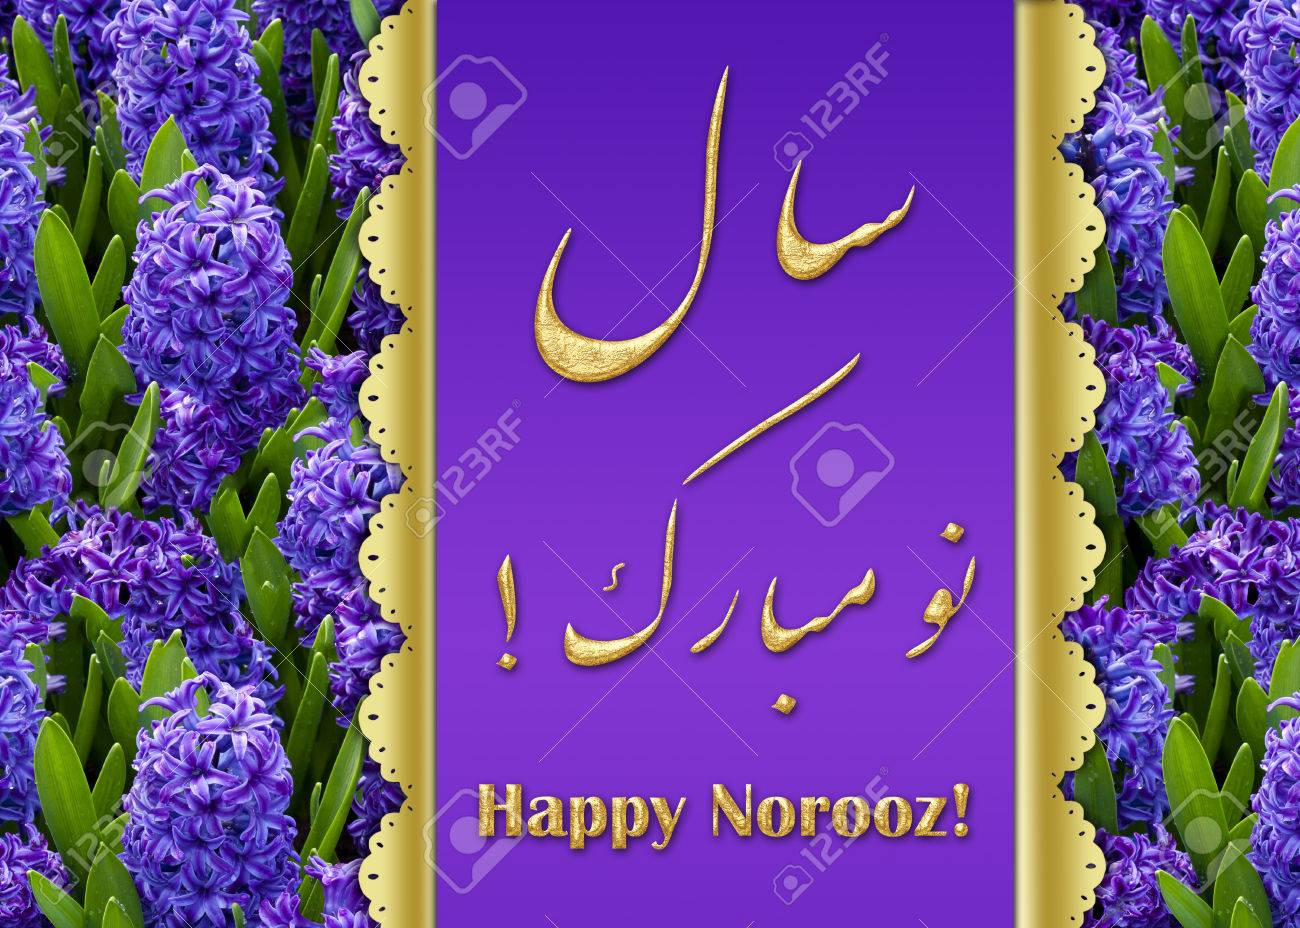 illustration noble elegant persian new year illustration purple gold border on a hyacinth fower field with new year wishes in english and farsi